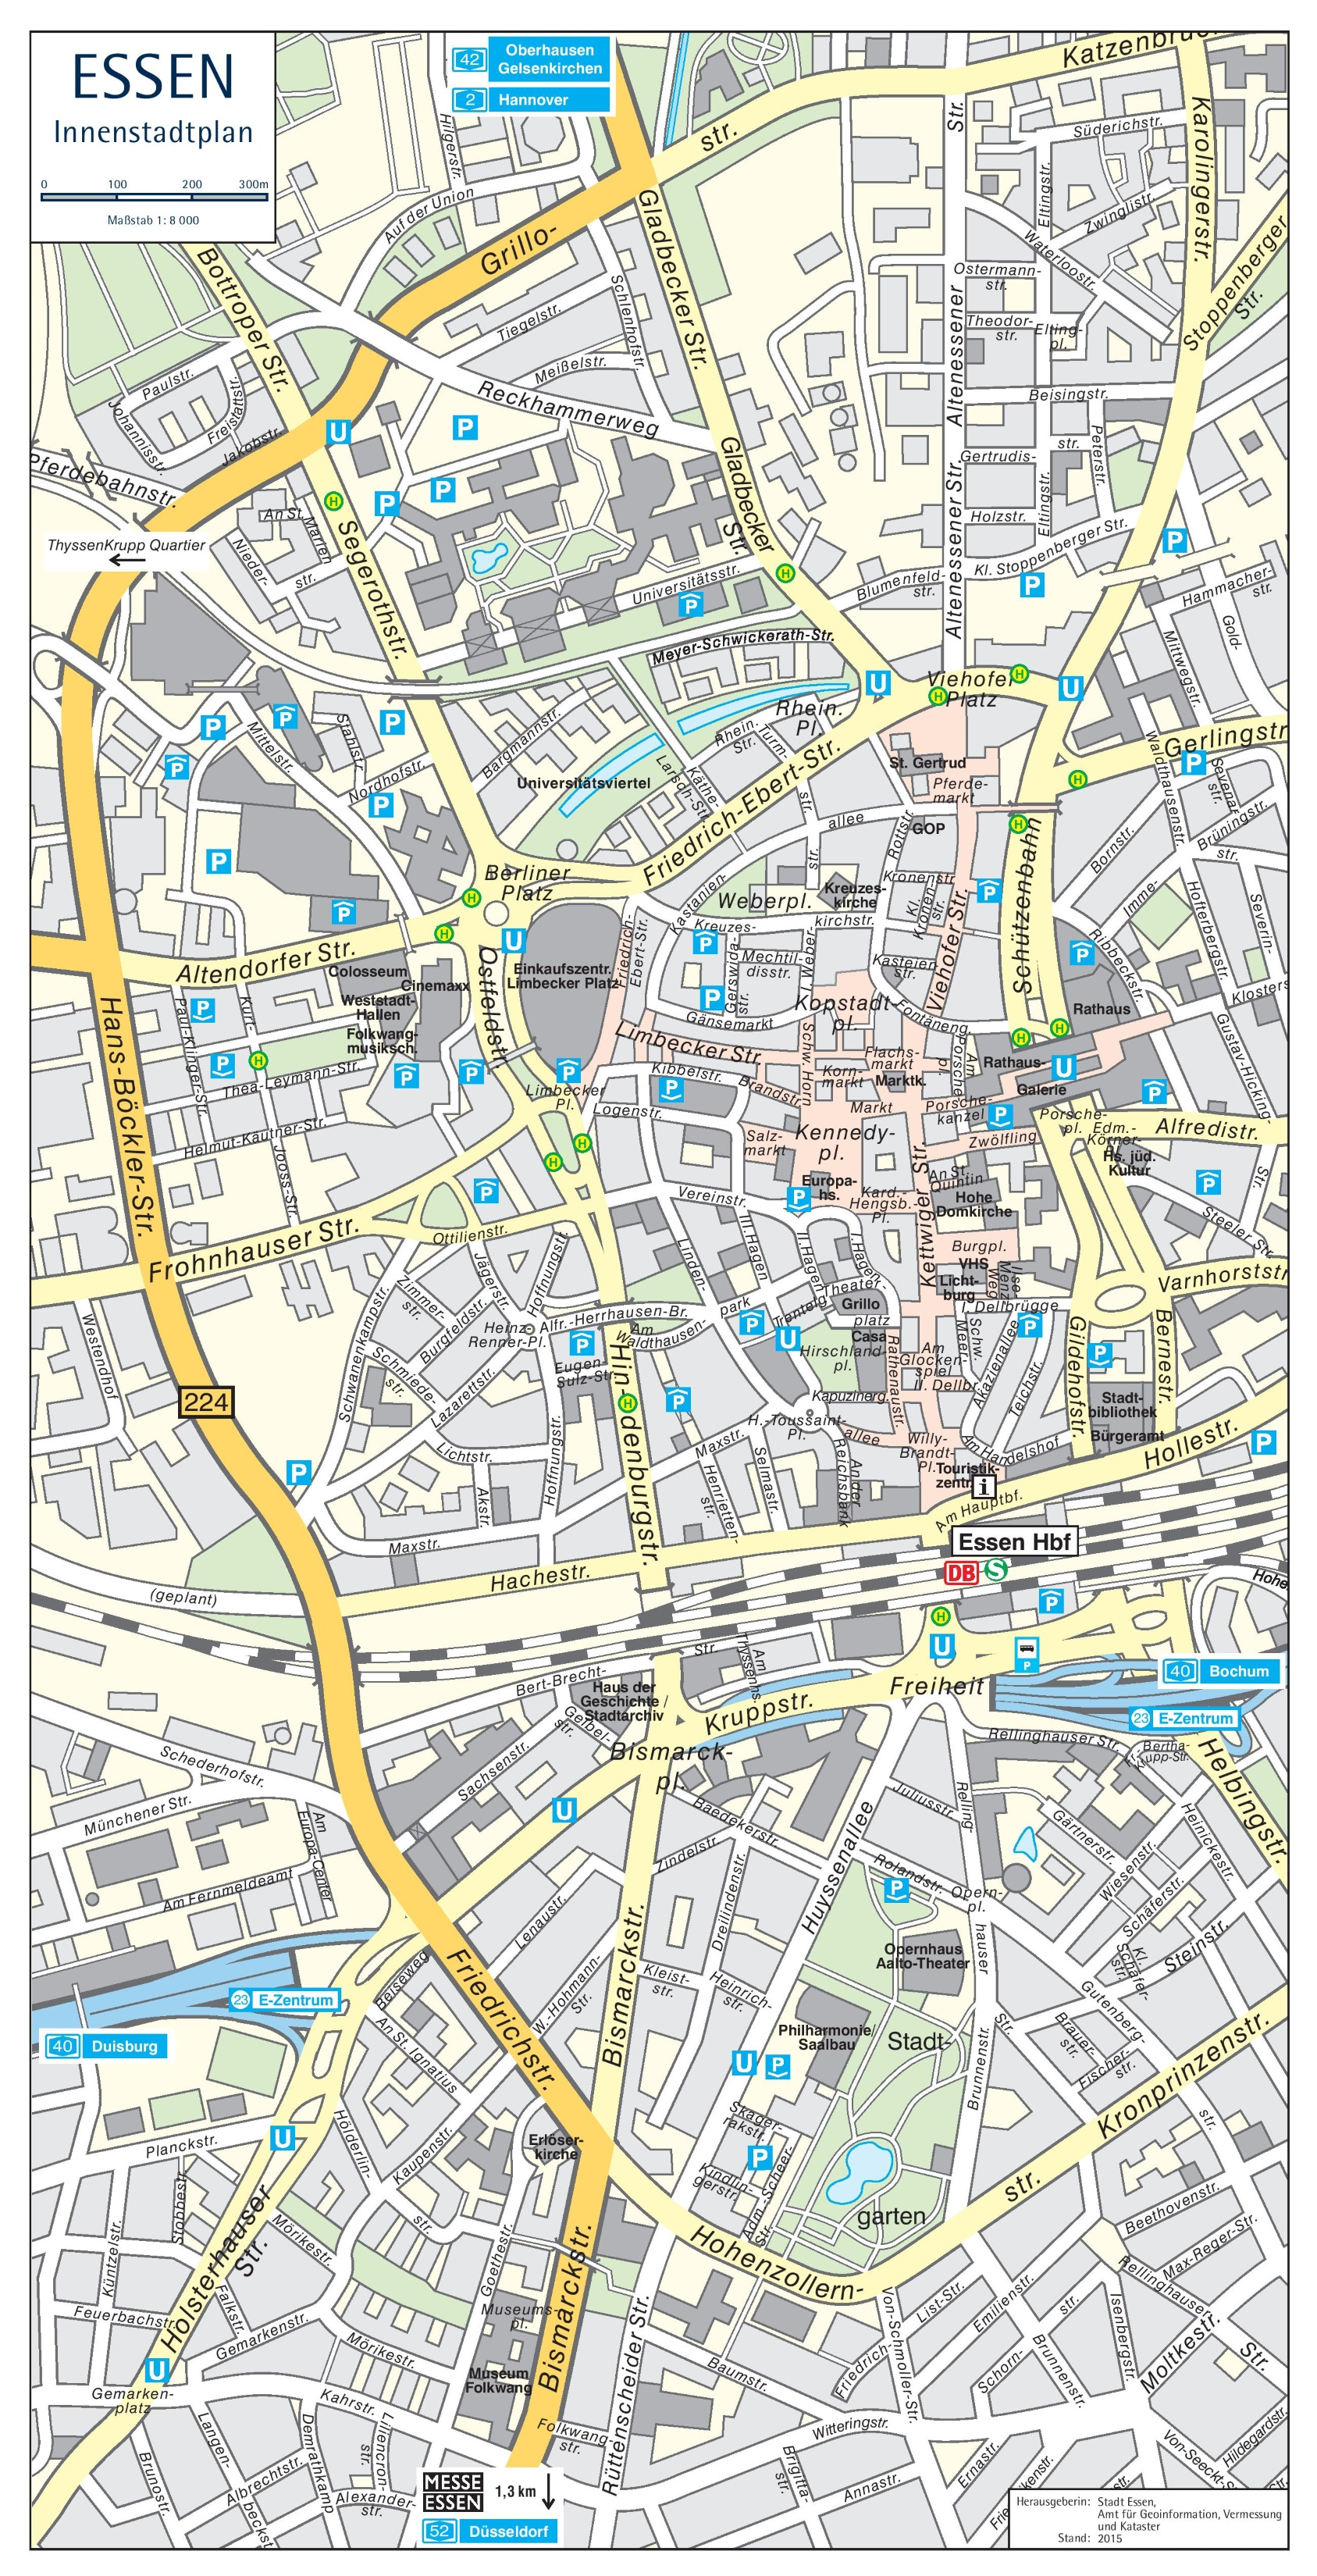 Essen city center map